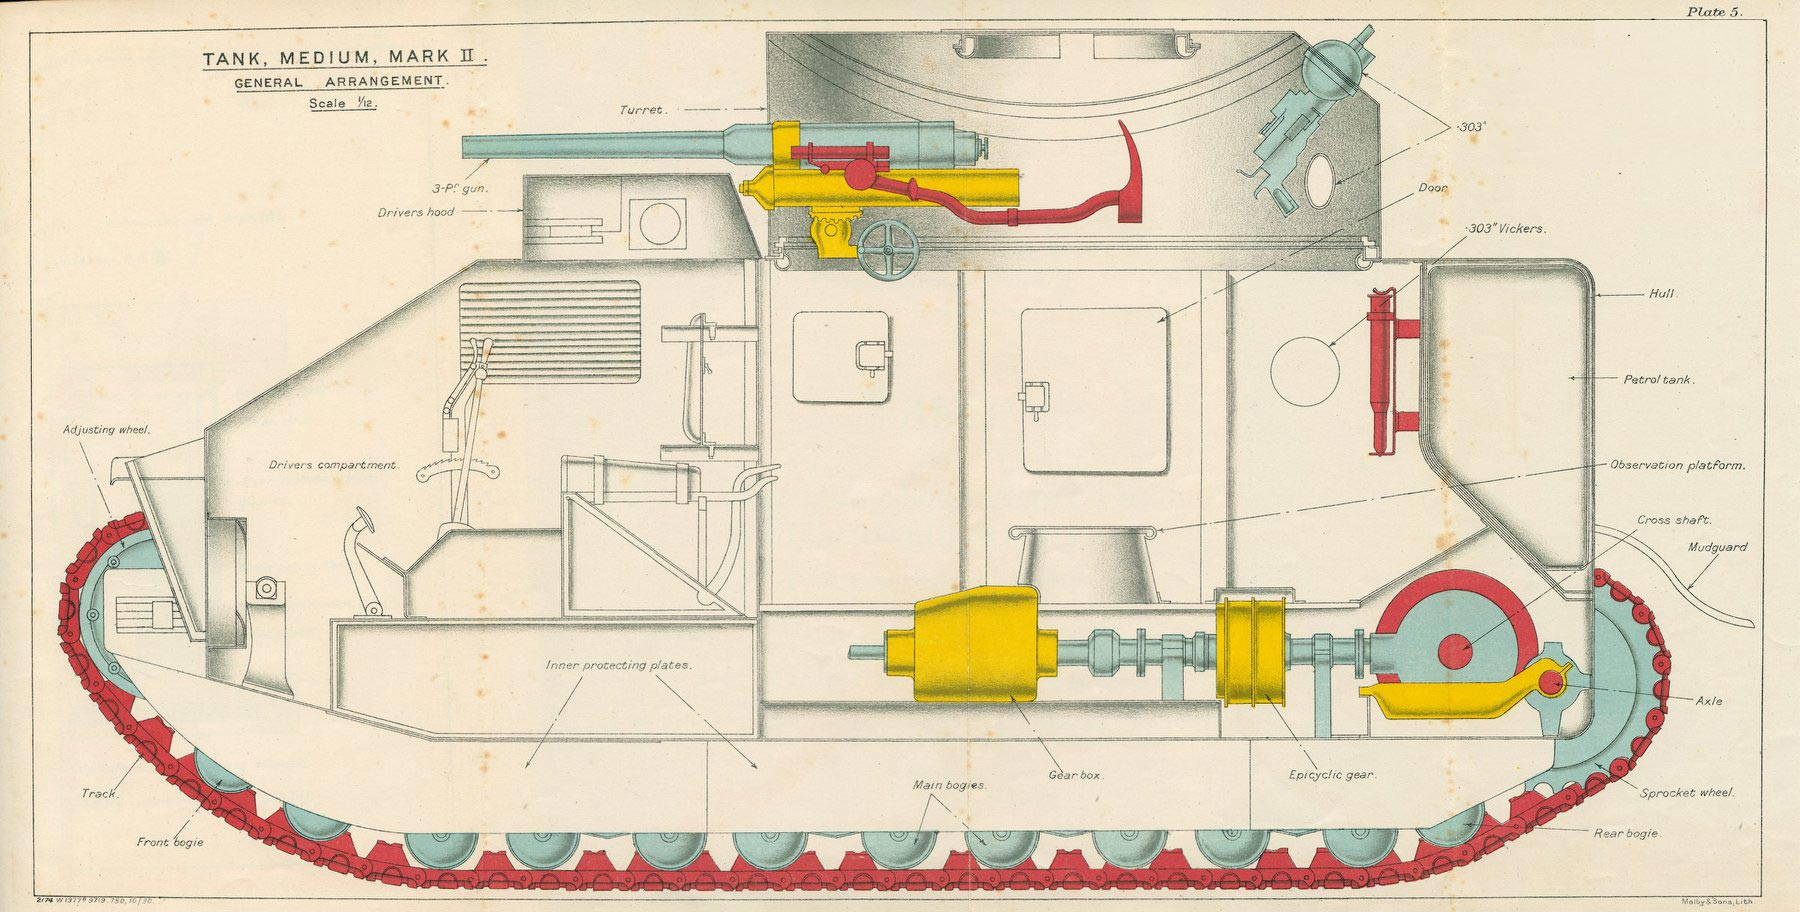 Vickers Medium Mark II tank cutaway